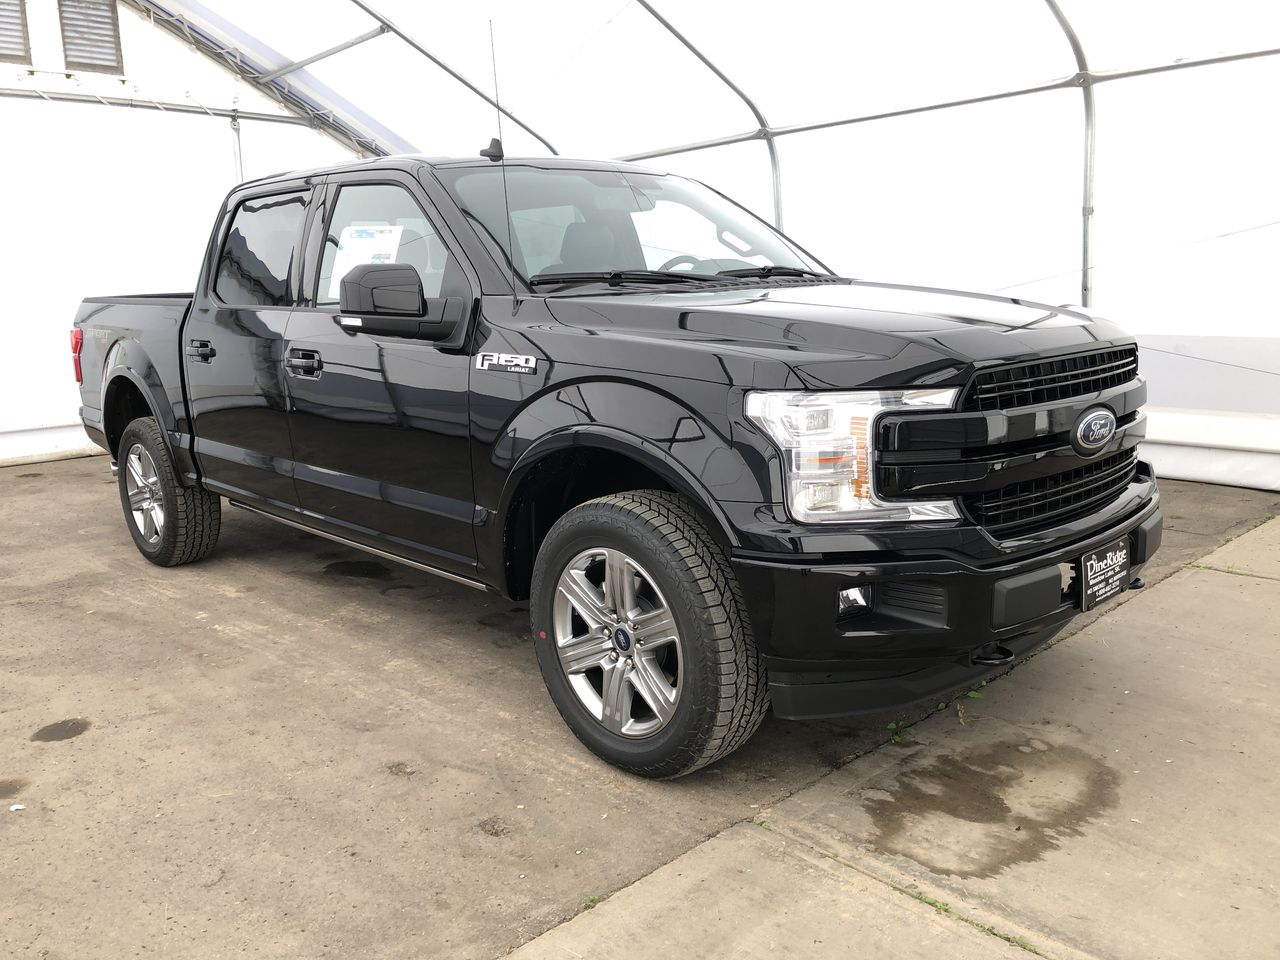 2019 Ford F-150 Lariat (0N6530) Main Image